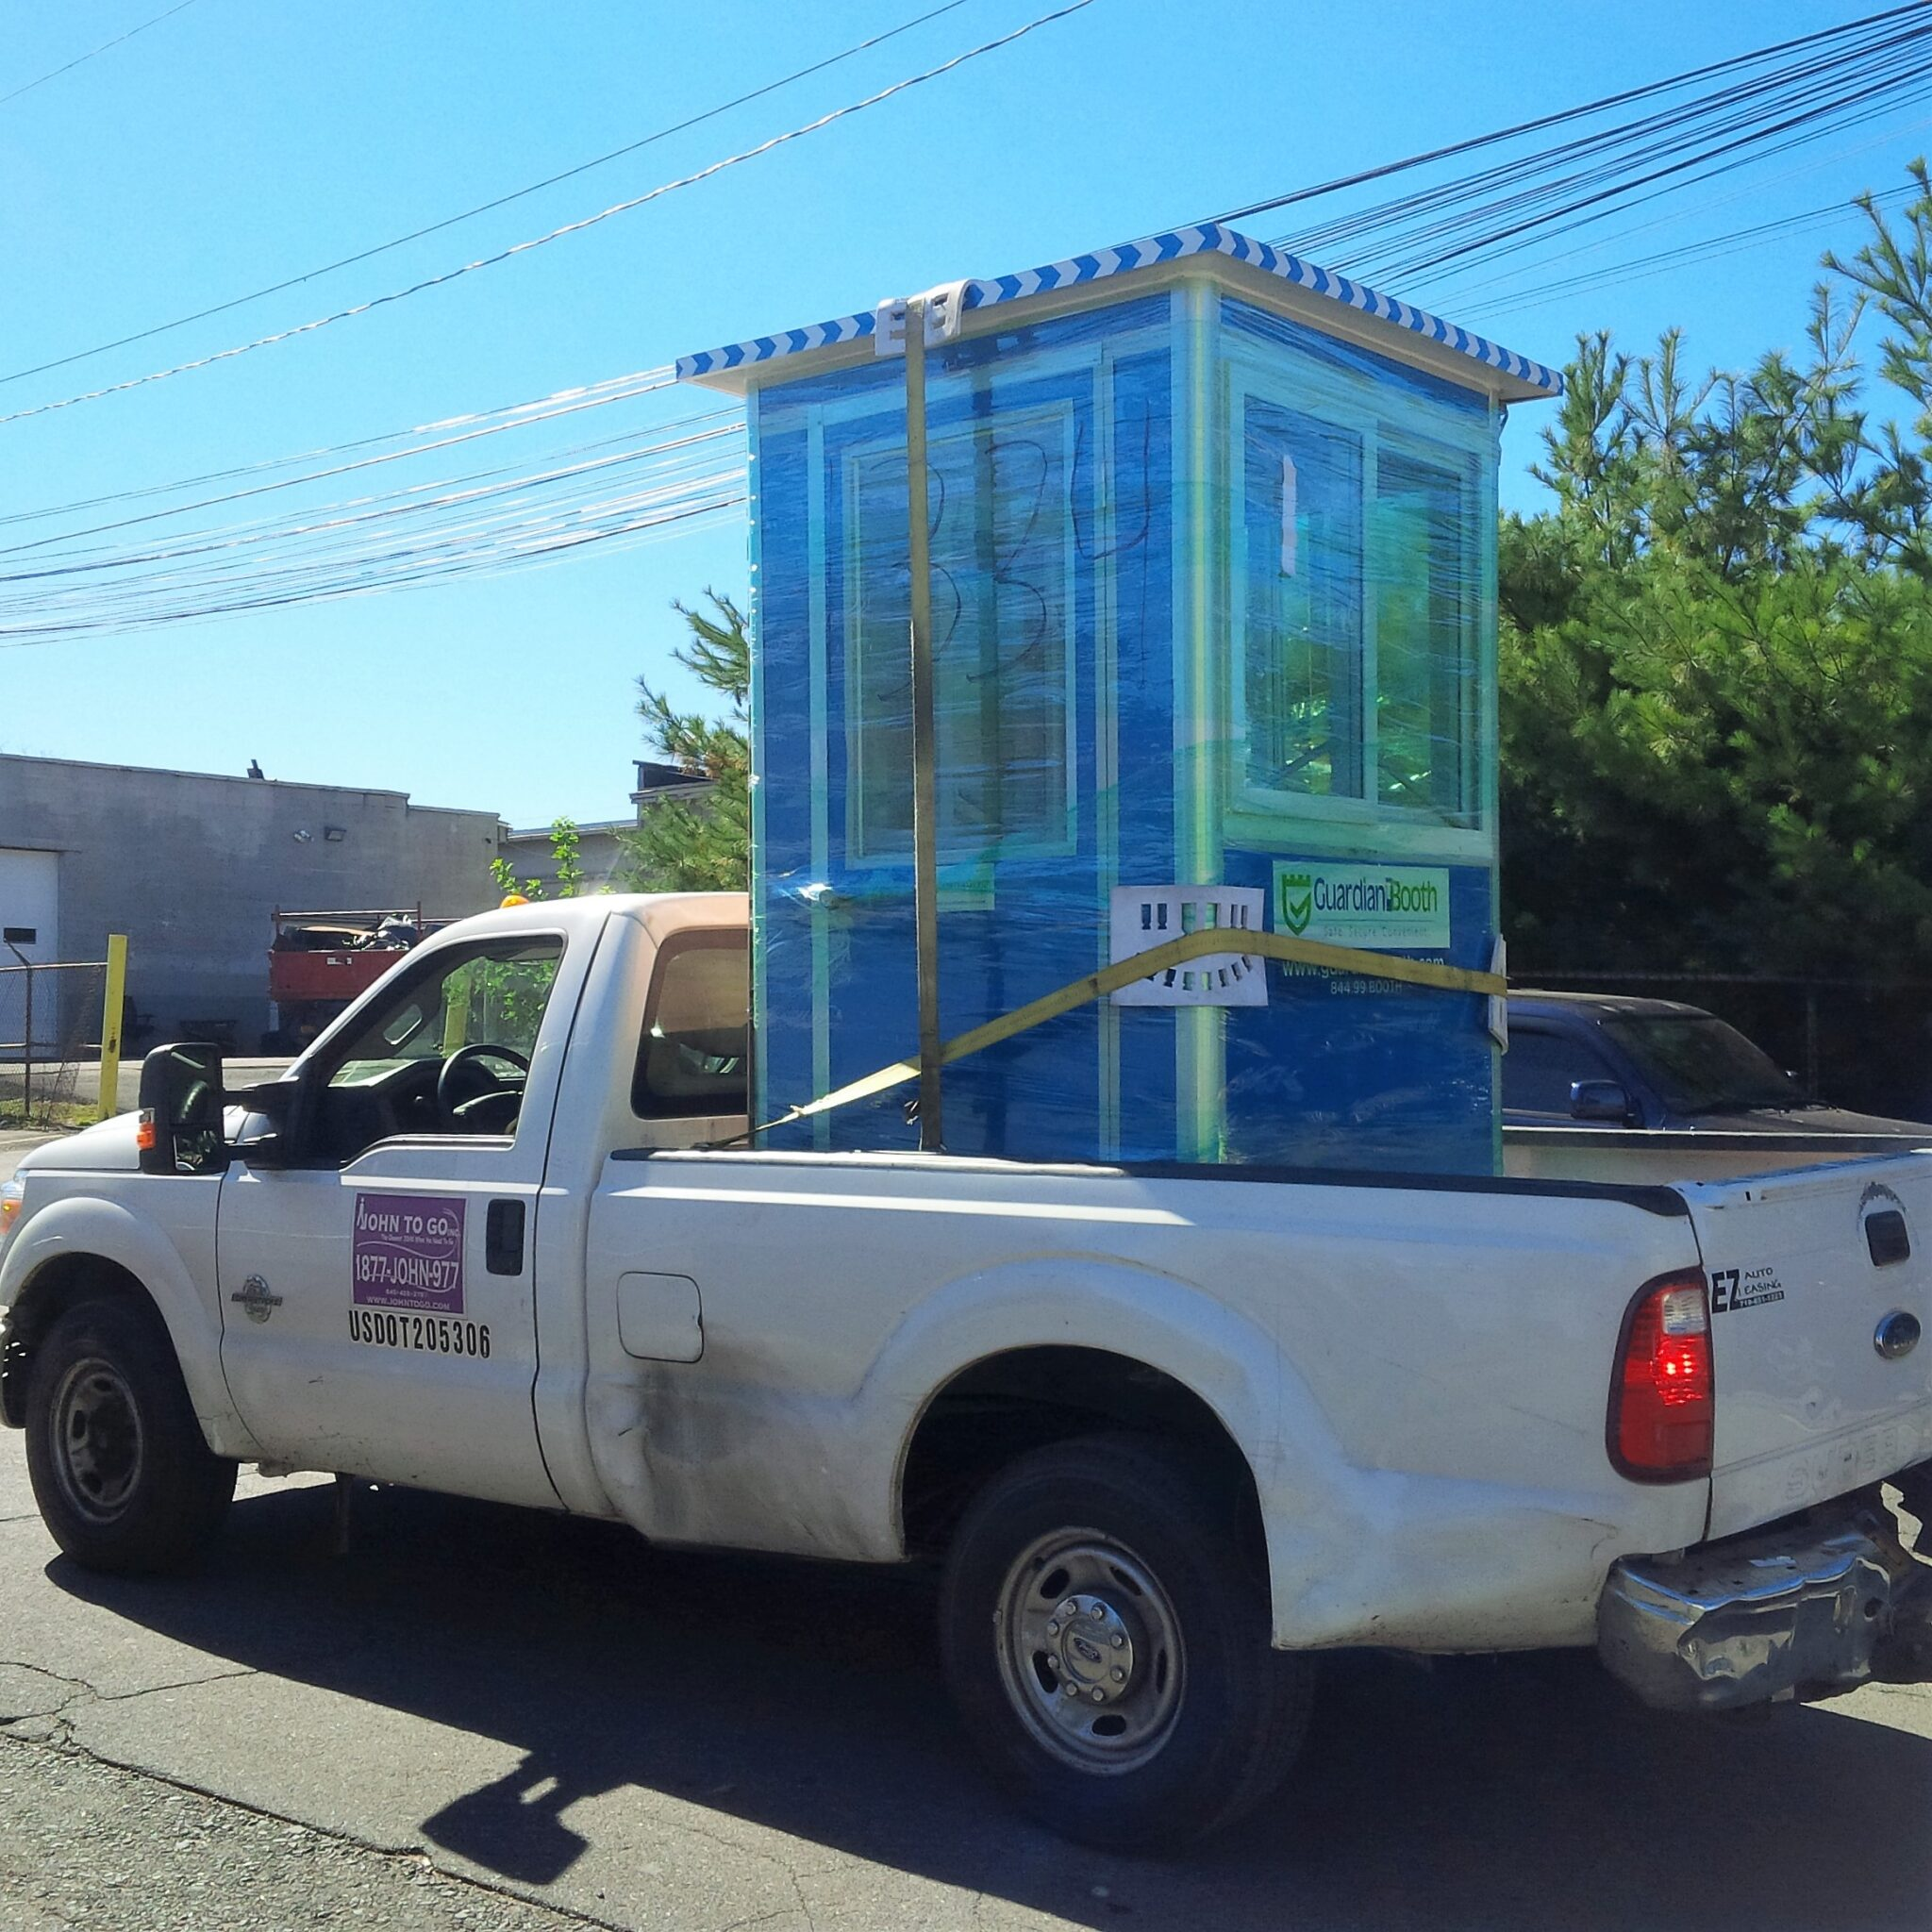 4x4 Parking Attendant Booth ready for Delivery in St James, NY with Sliding Windows and Swing Door